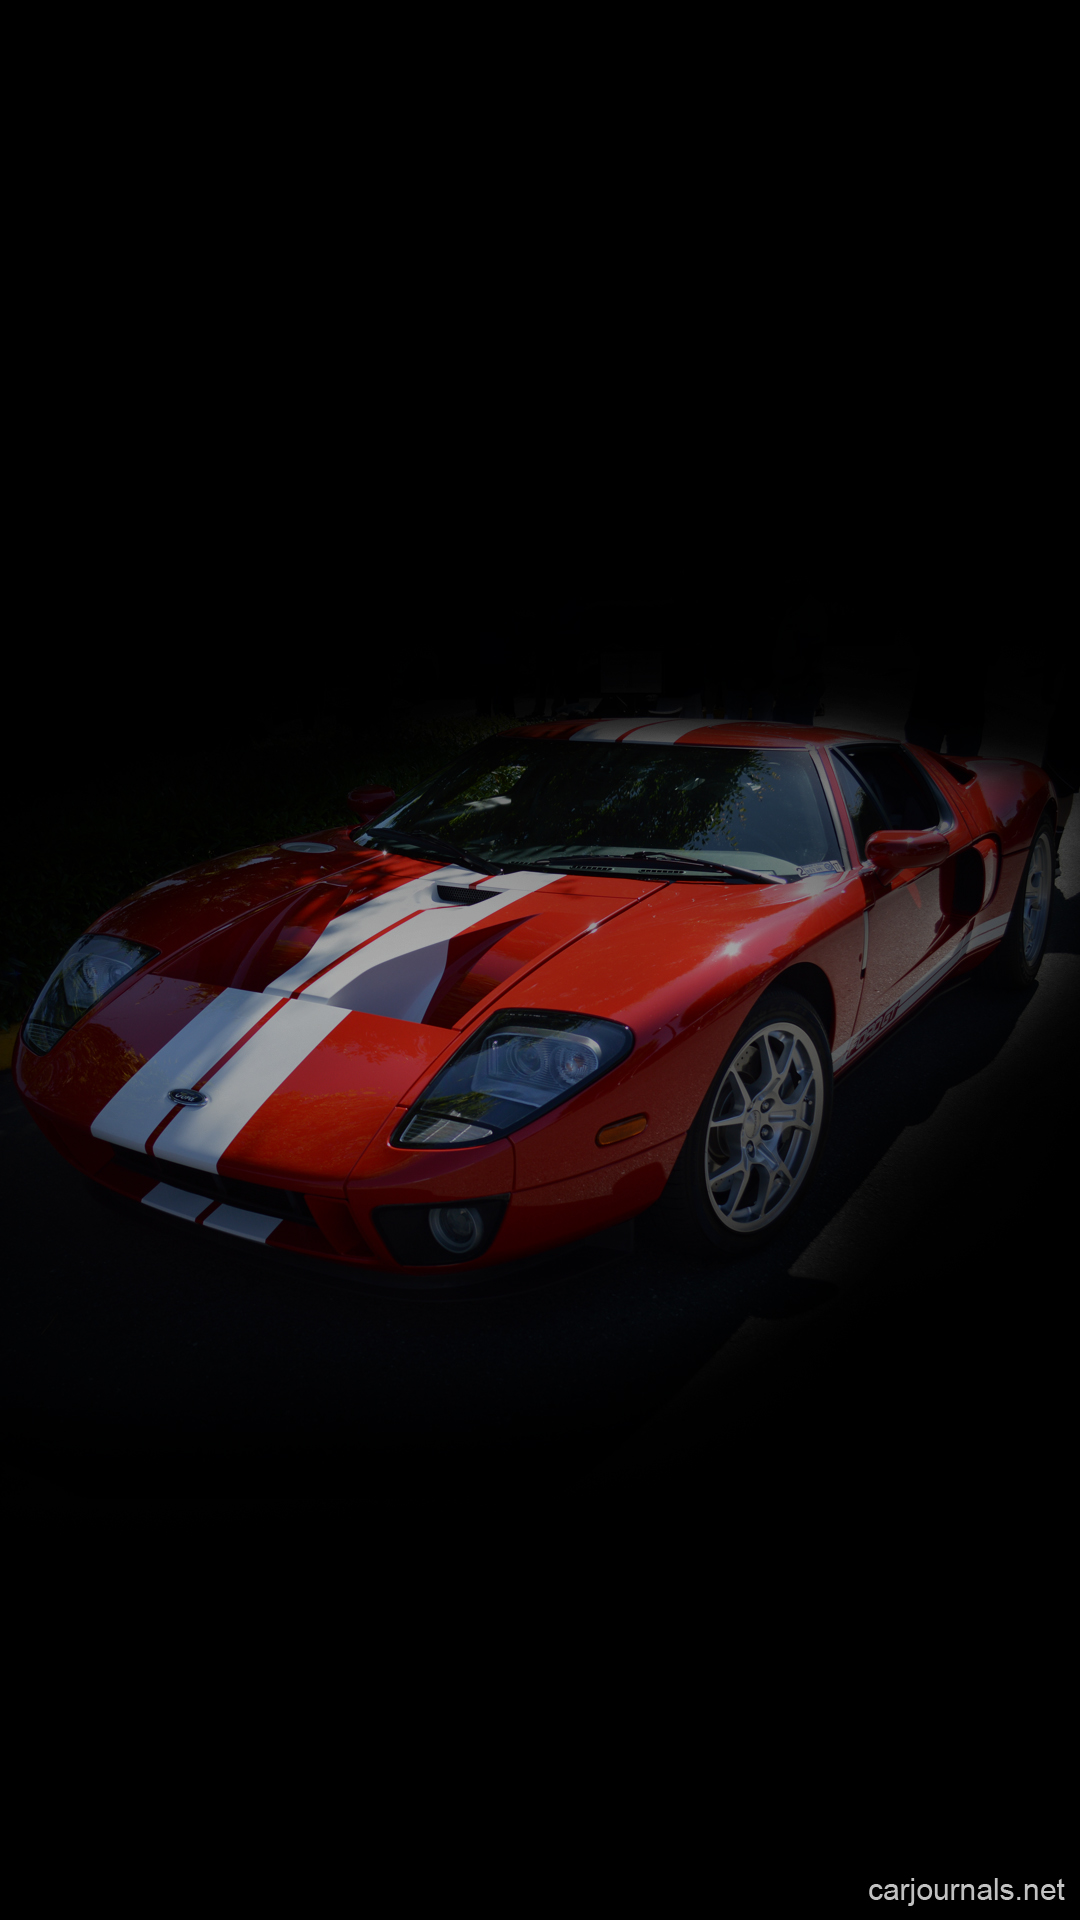 Ford GT40 iPhone Wallpaper  - Car journals